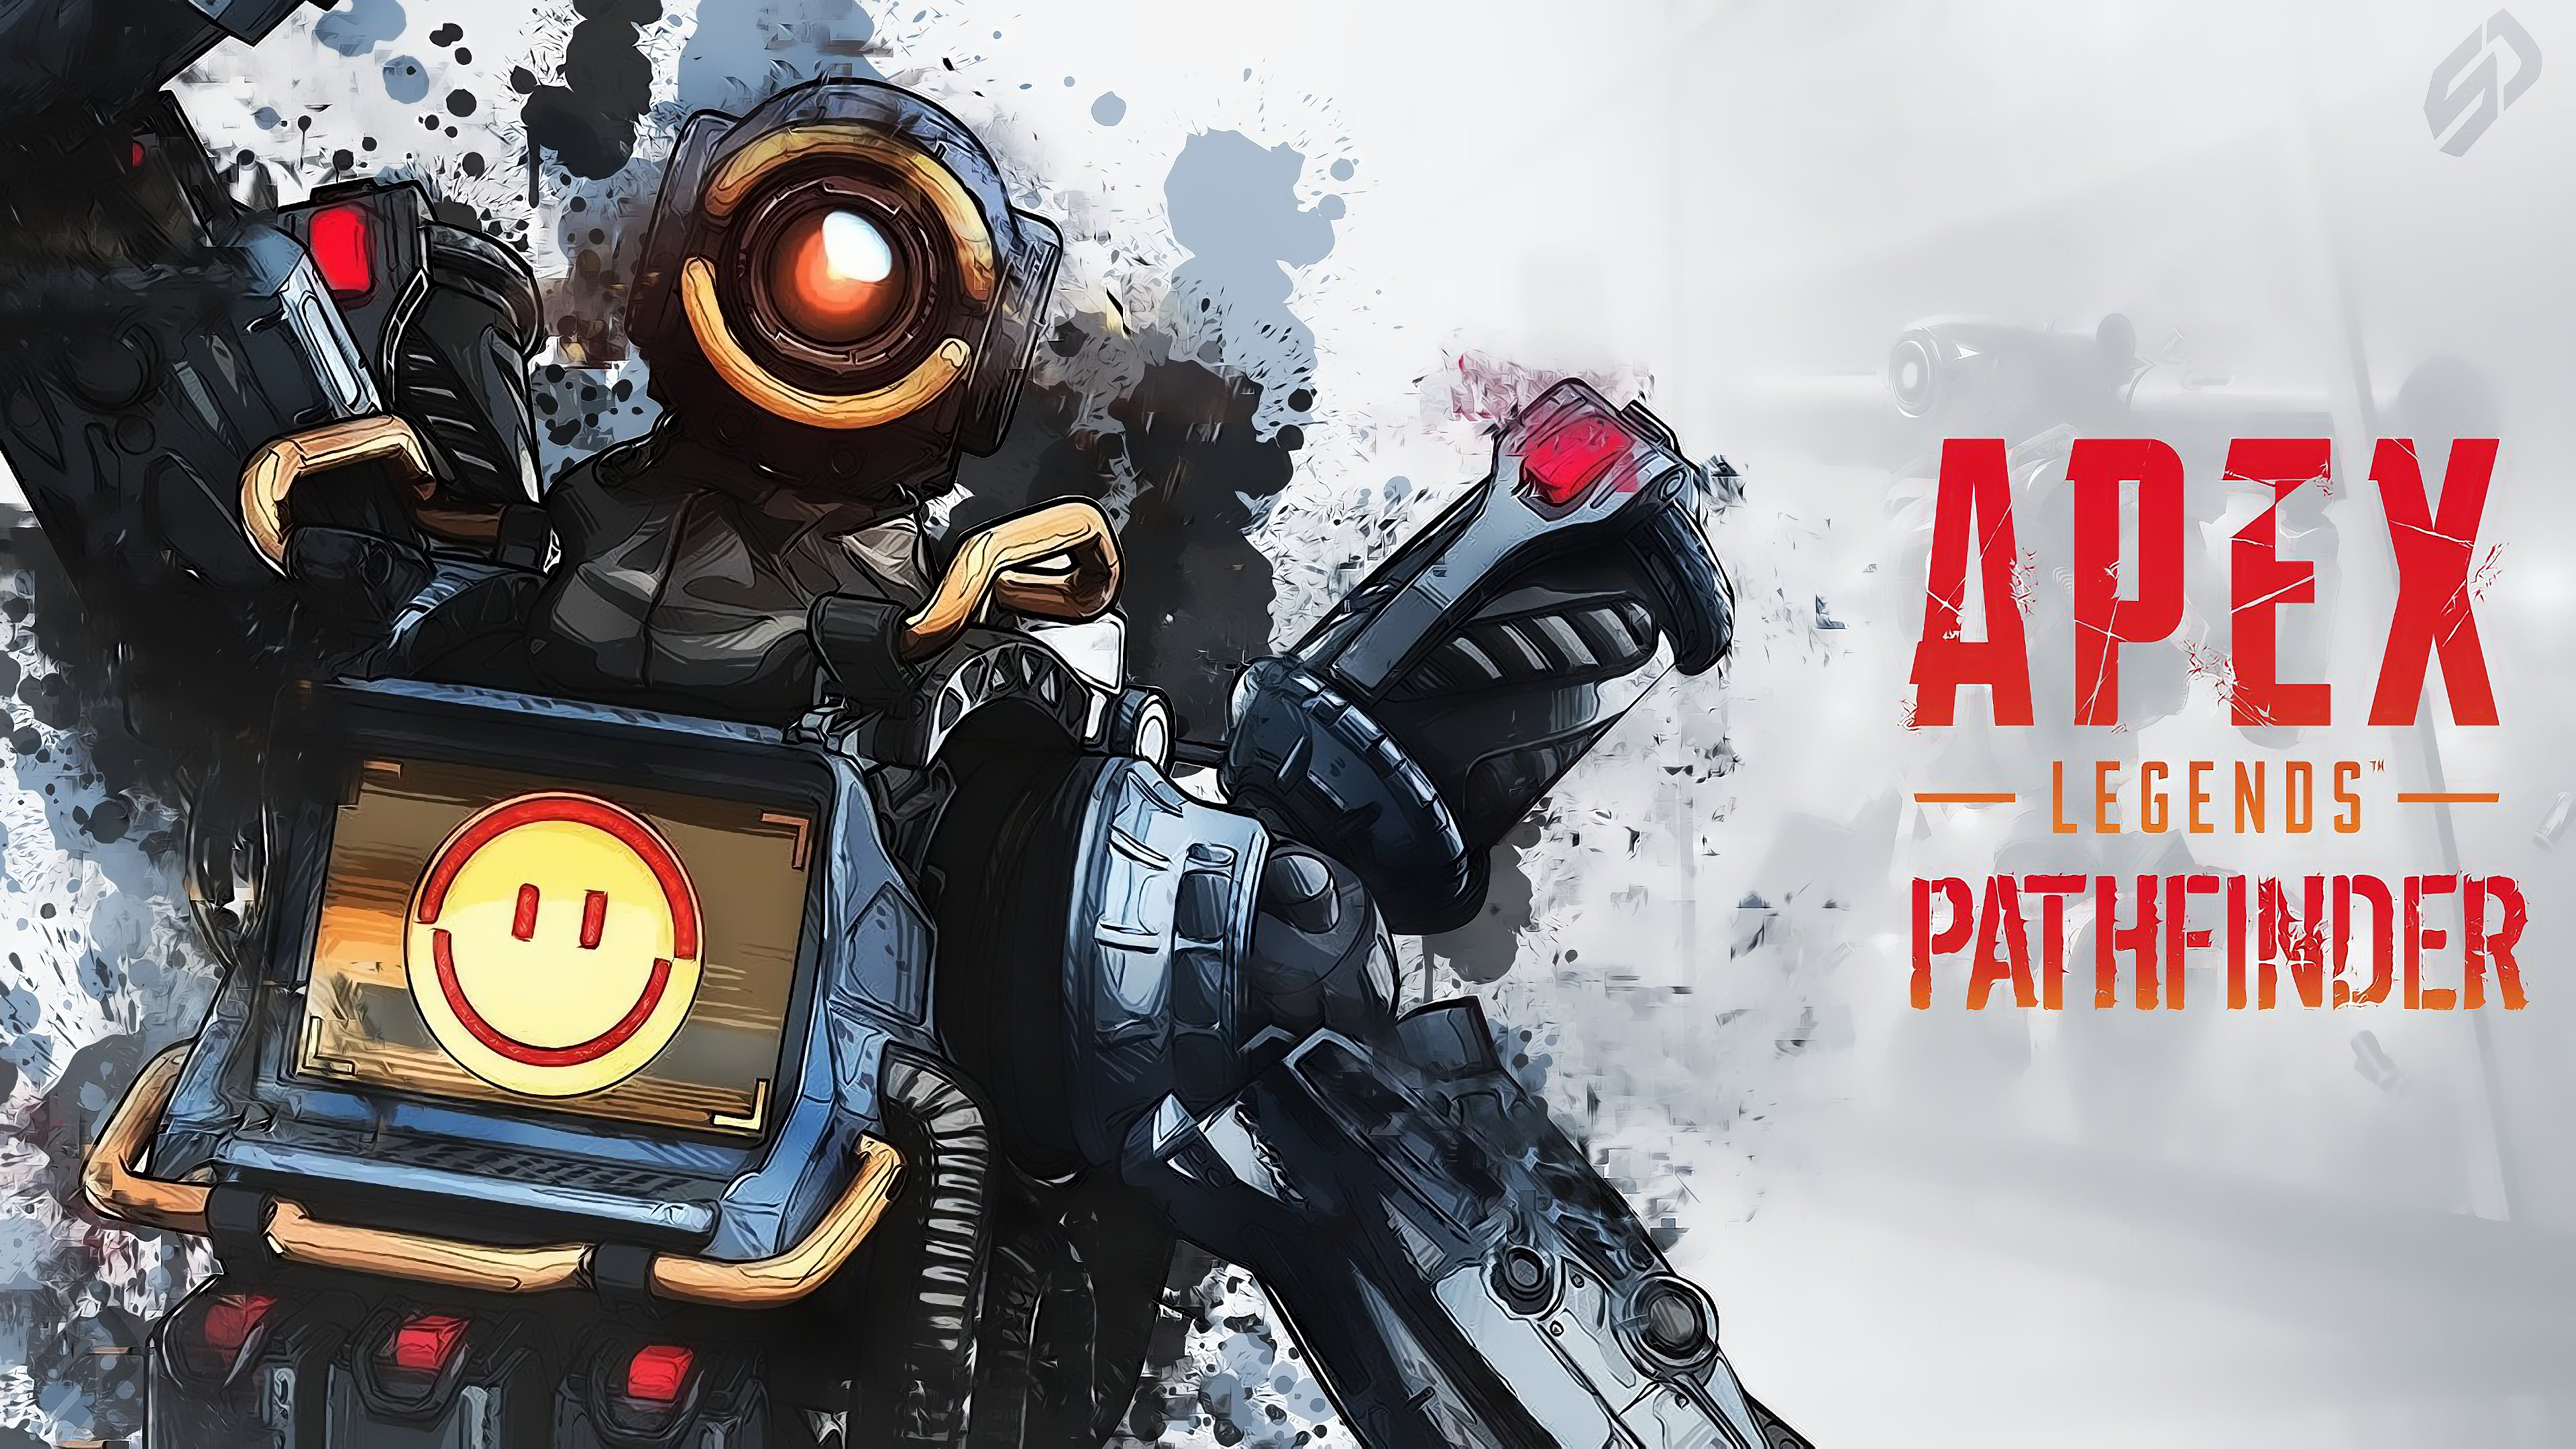 Fondos de pantalla Apex Legends Pathfinder